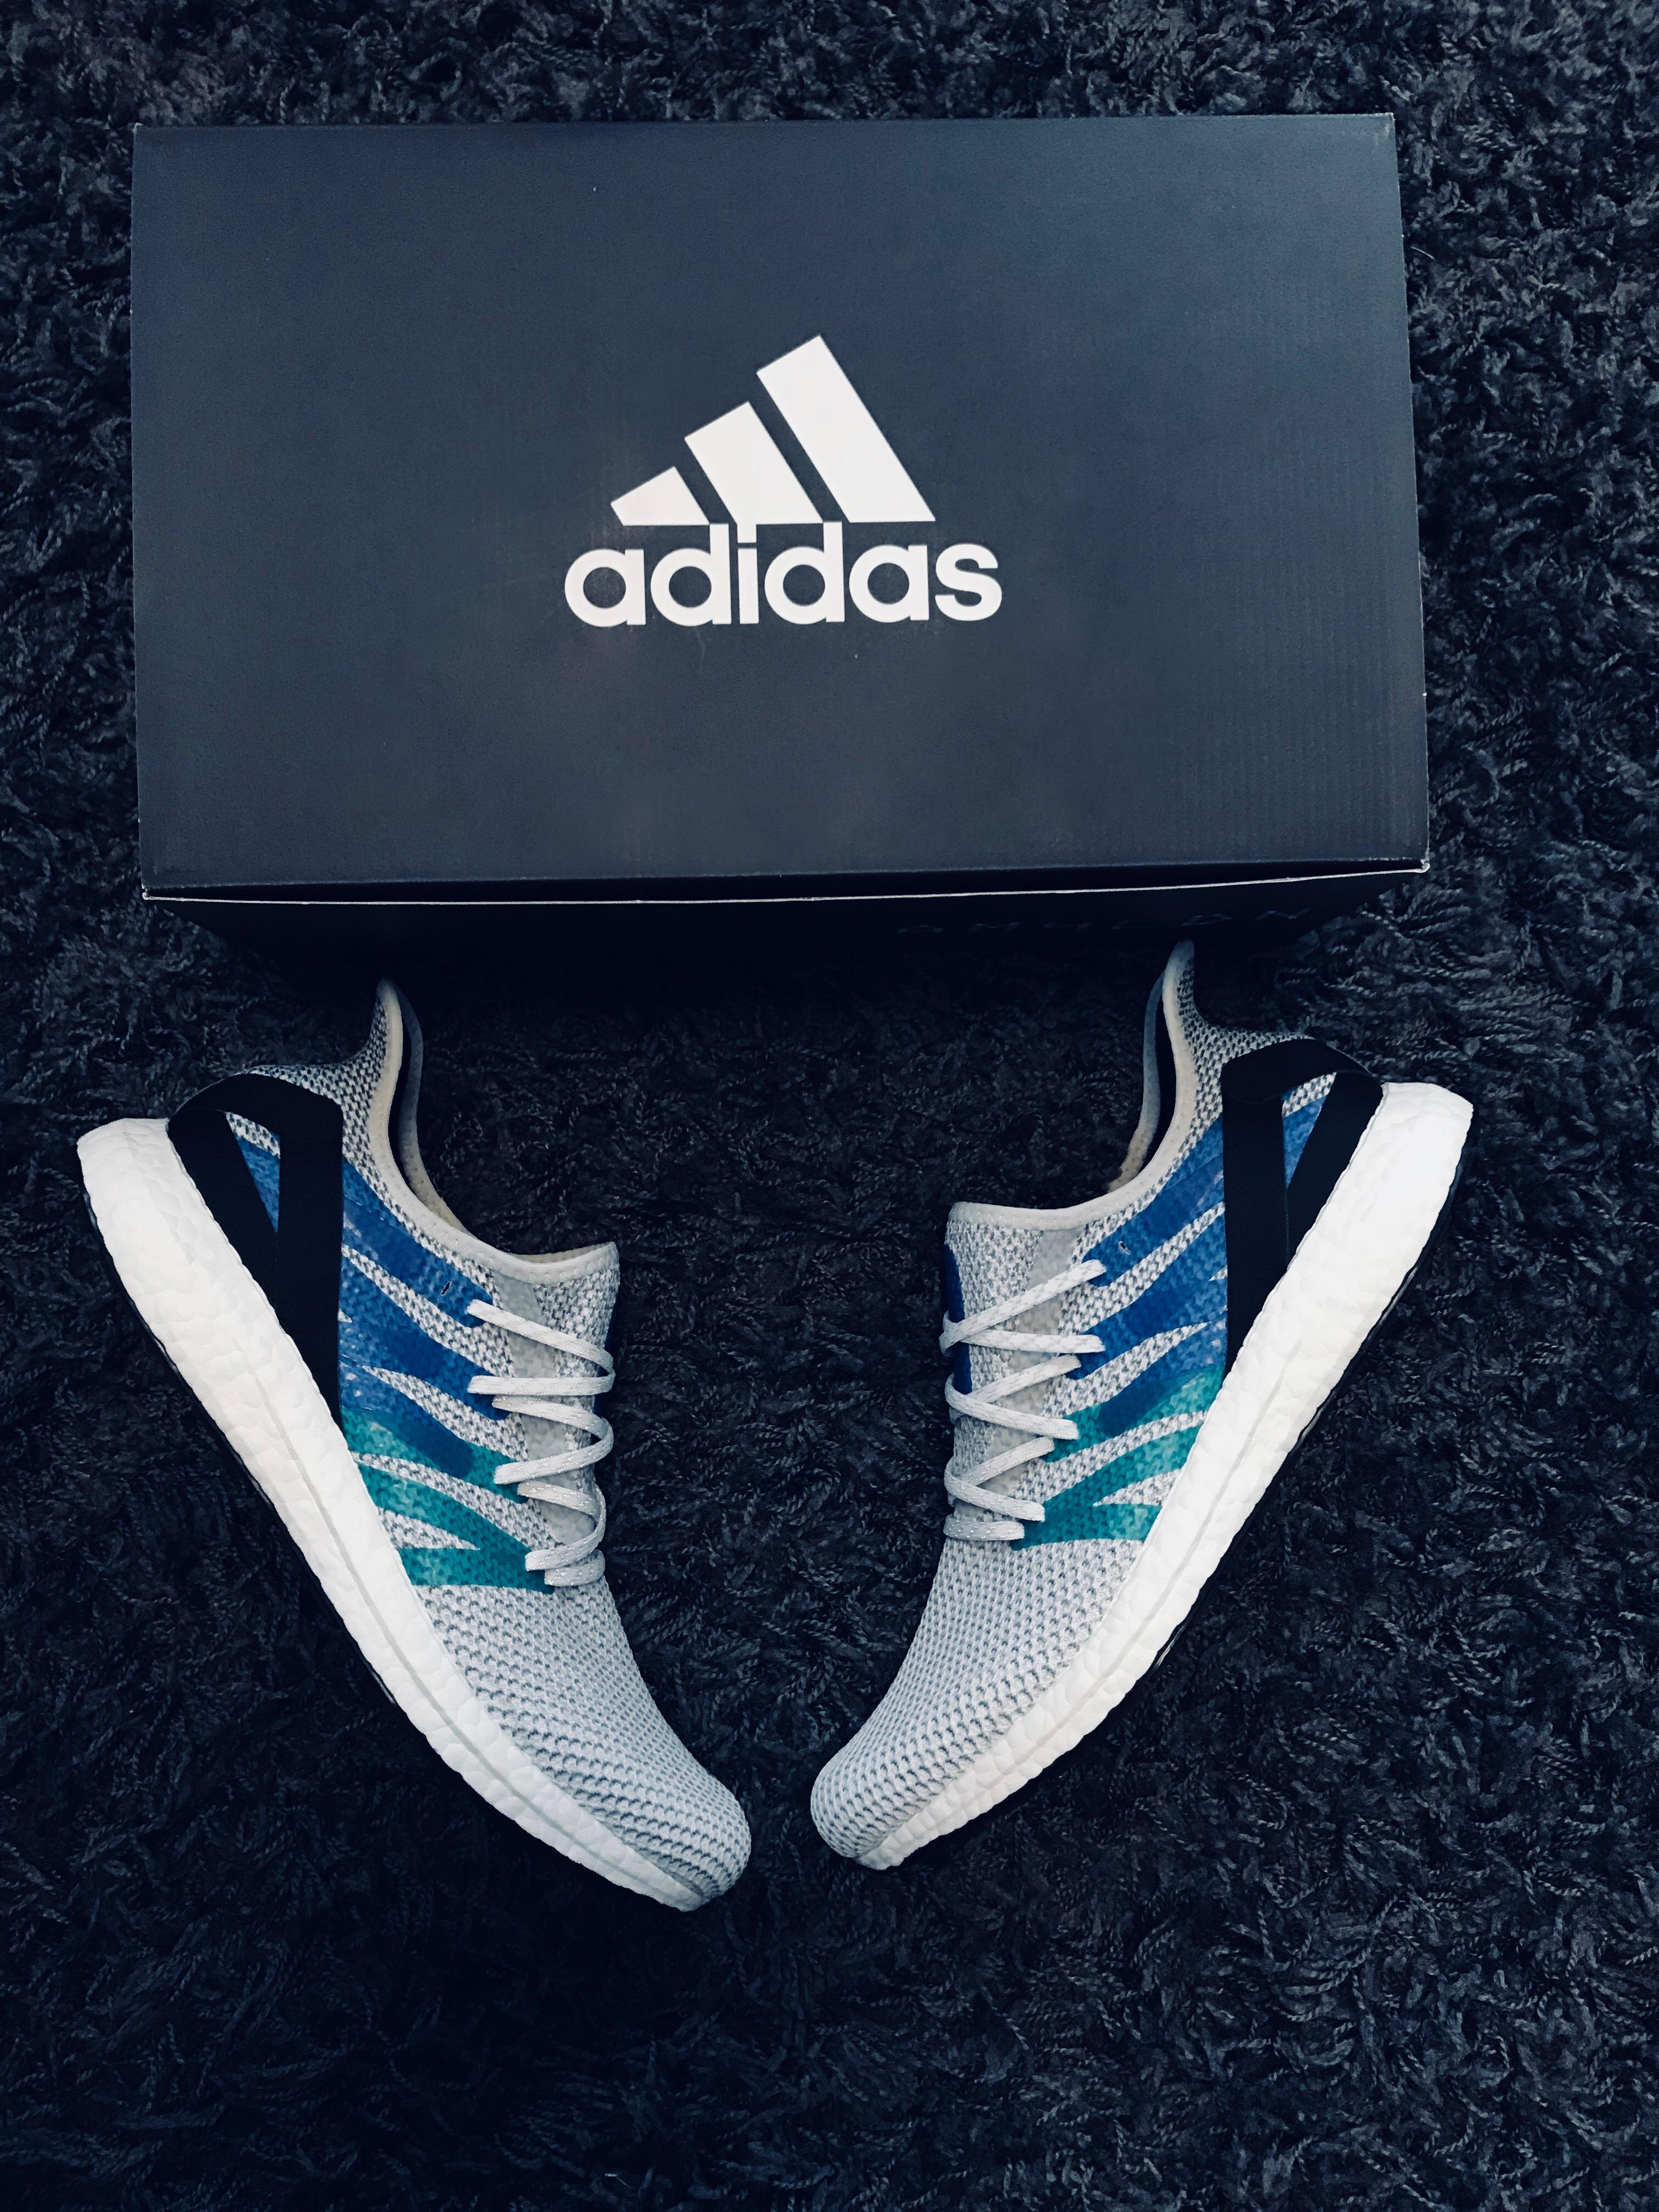 Made in germany adidas speedfactory sneaker madeingermany robin  3c2d245f 4e4c 4705 9ca0 c8cb1070ff83